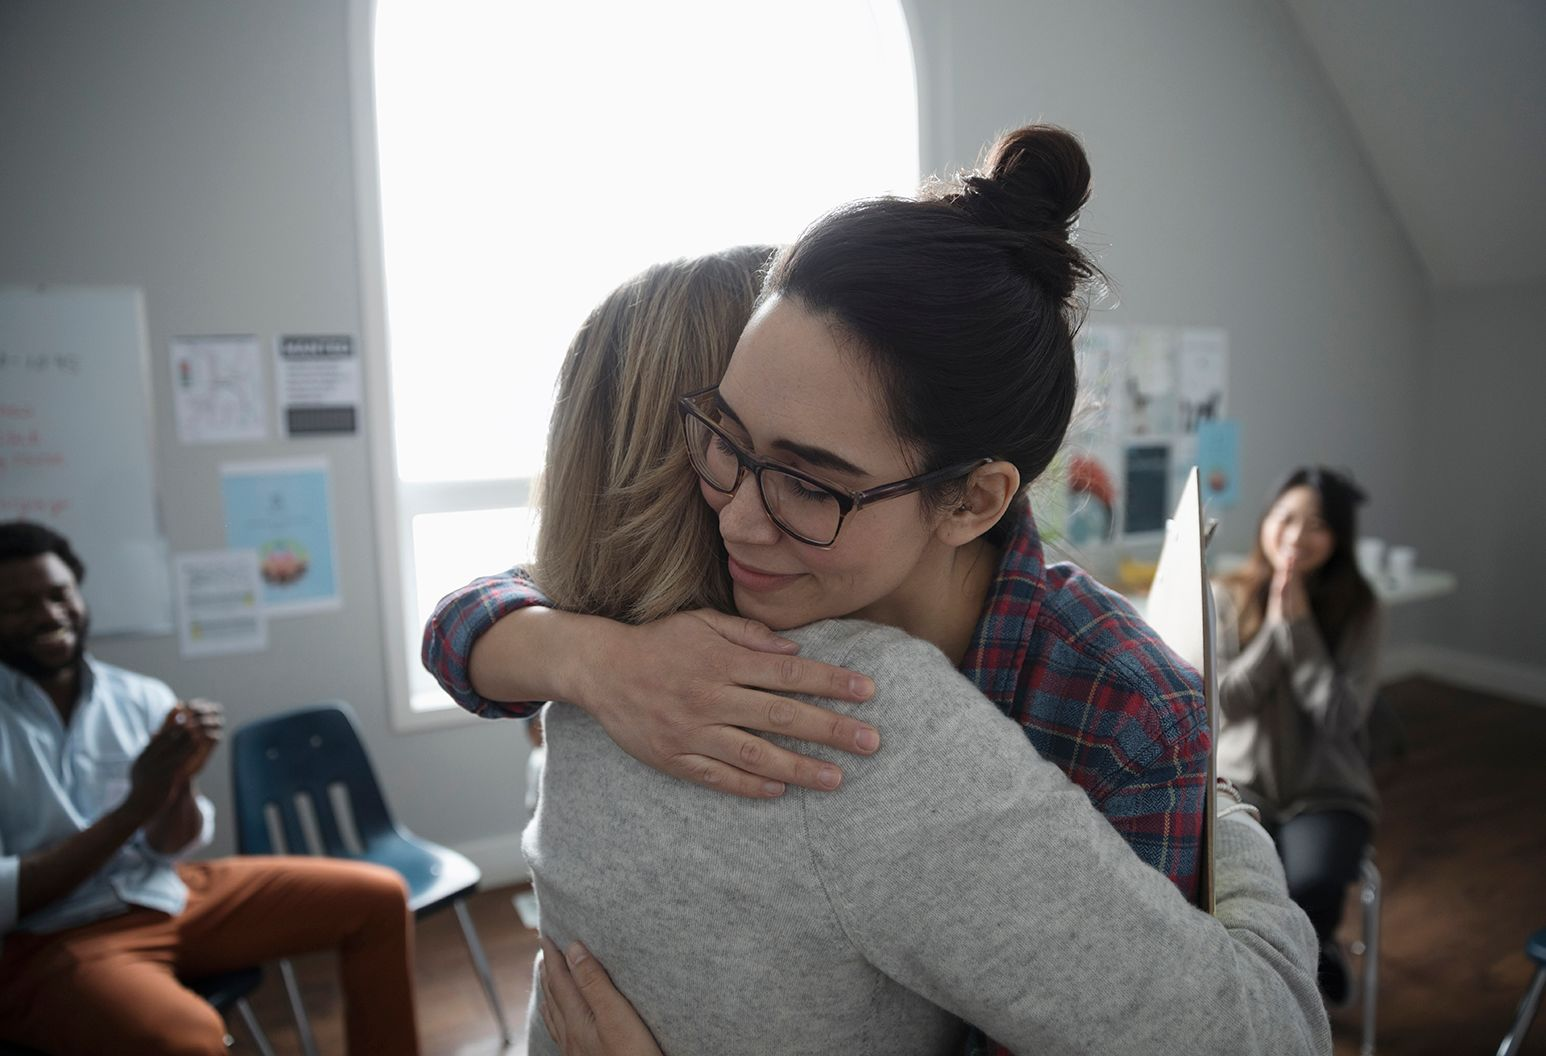 Two young women hug during group counseling